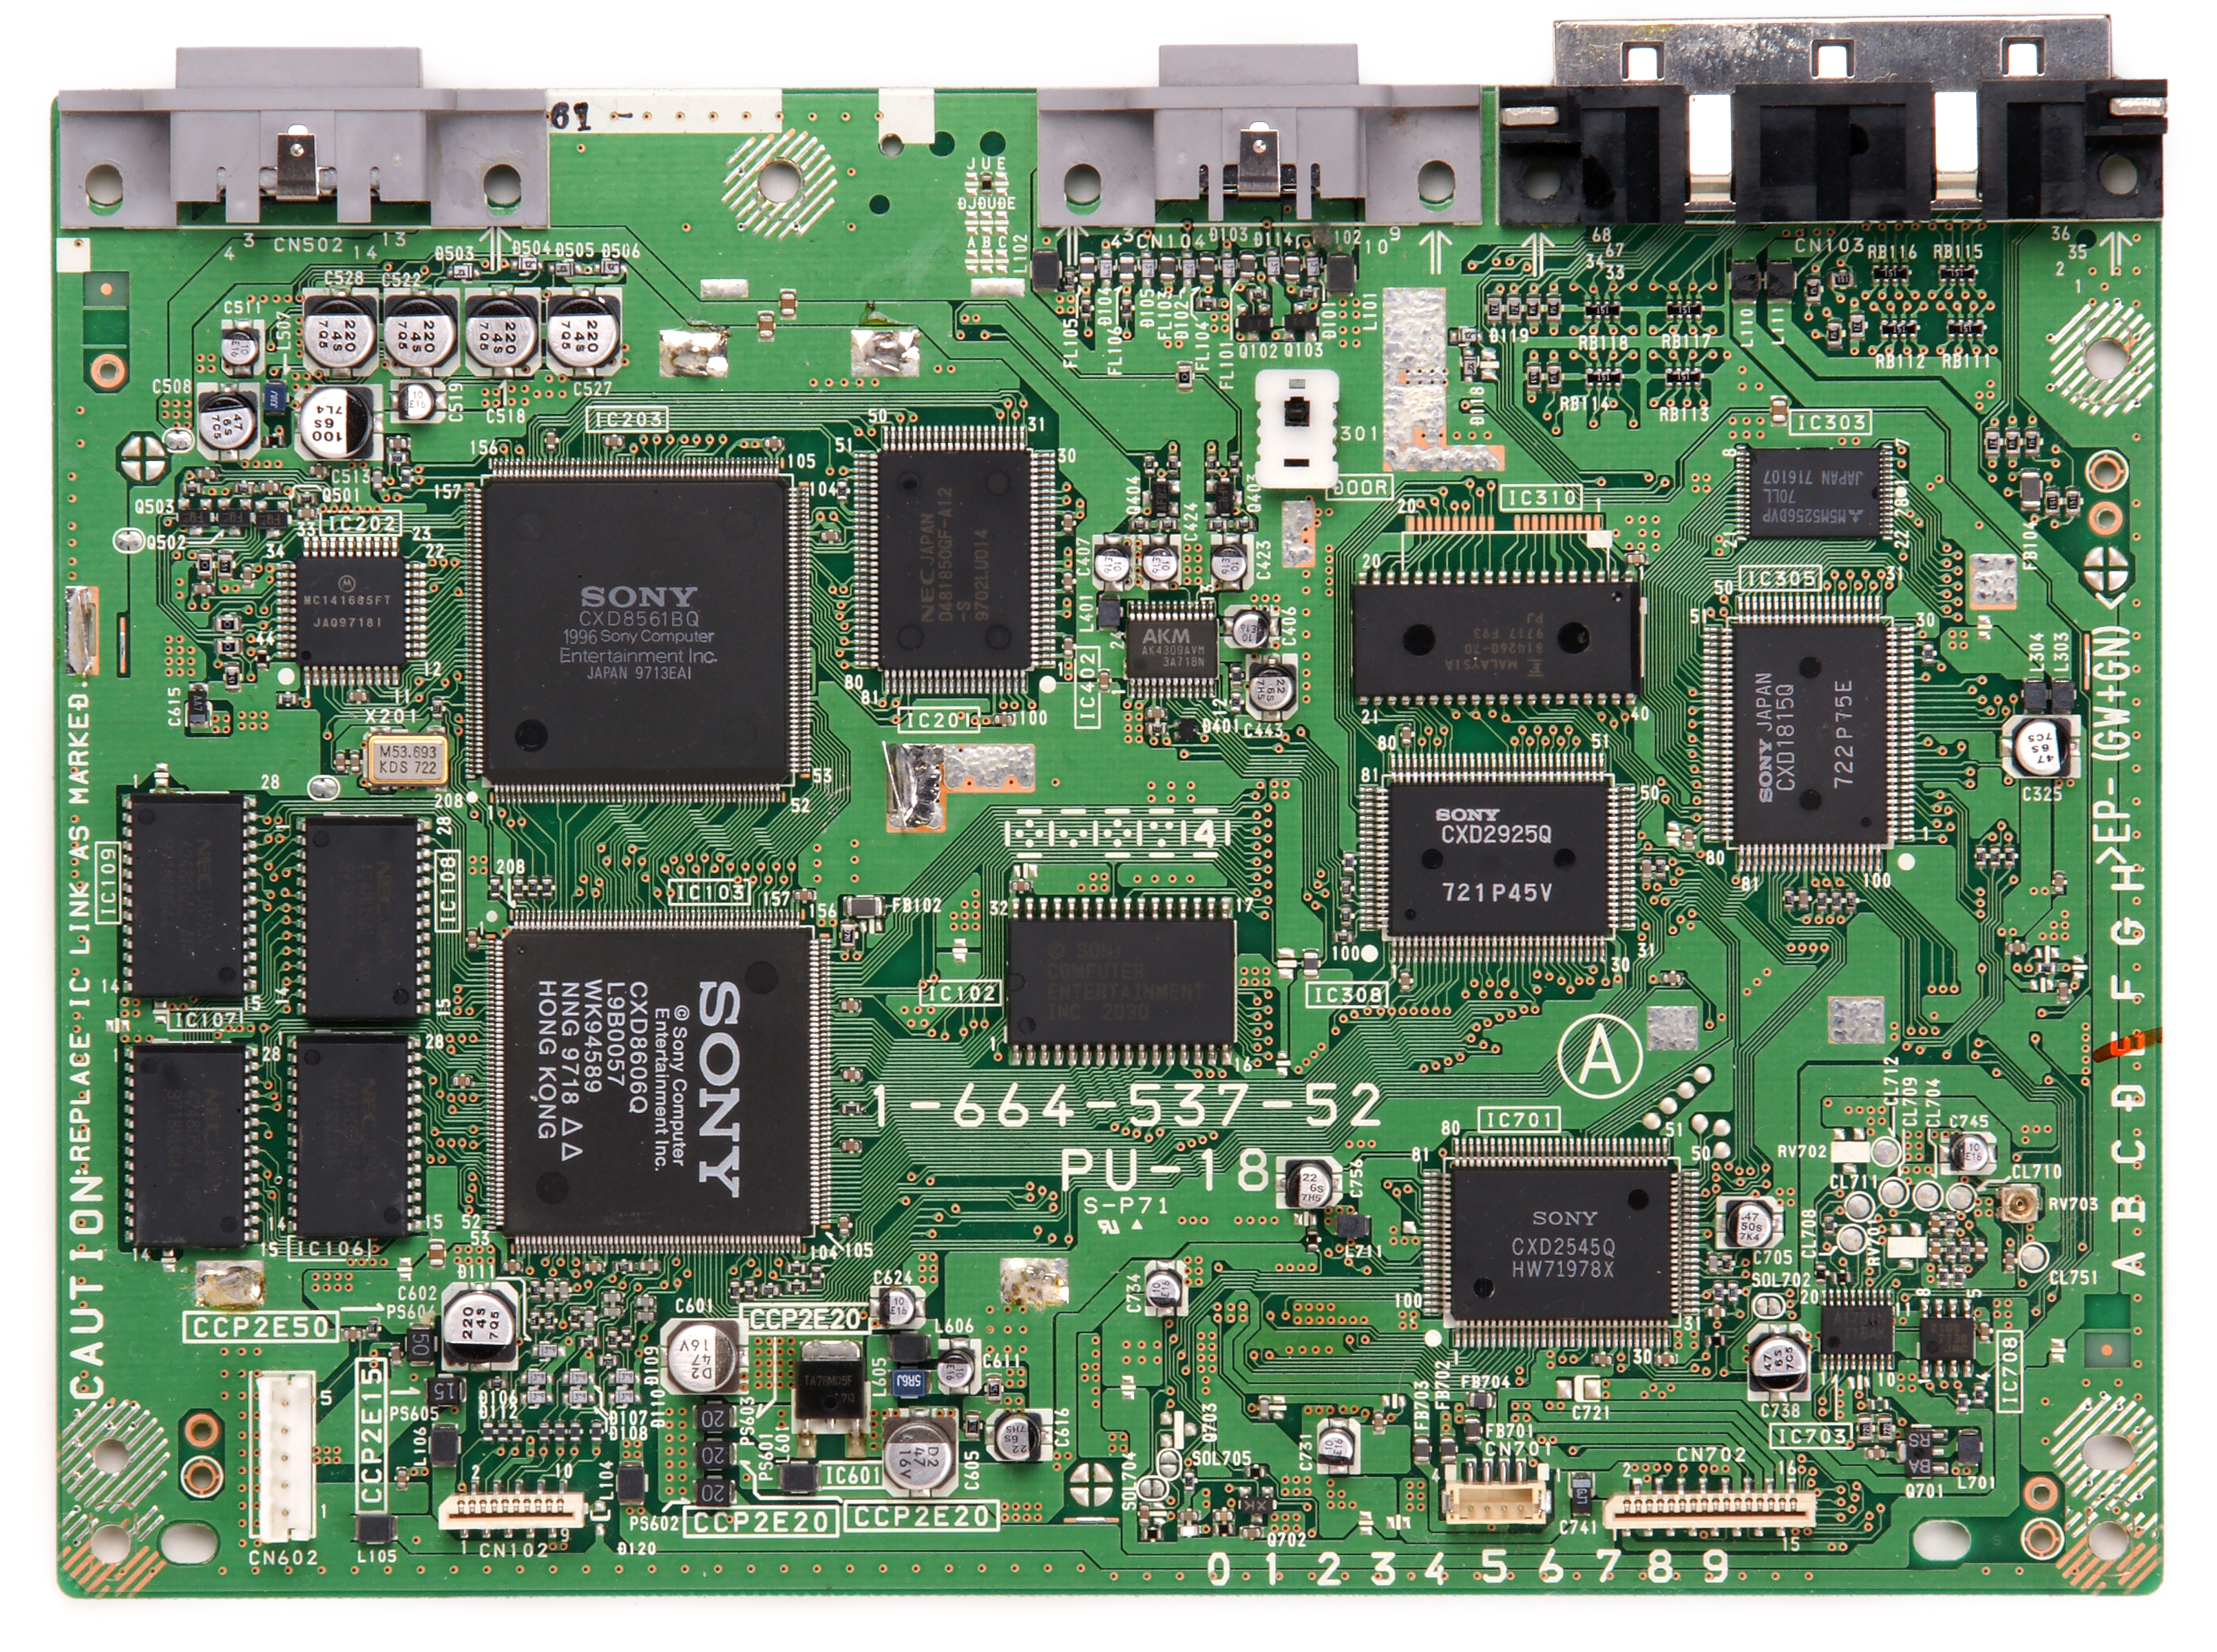 Computers Hardware Software Networks Coupled Analysis Of An Integrated Circuit Board Motherboard